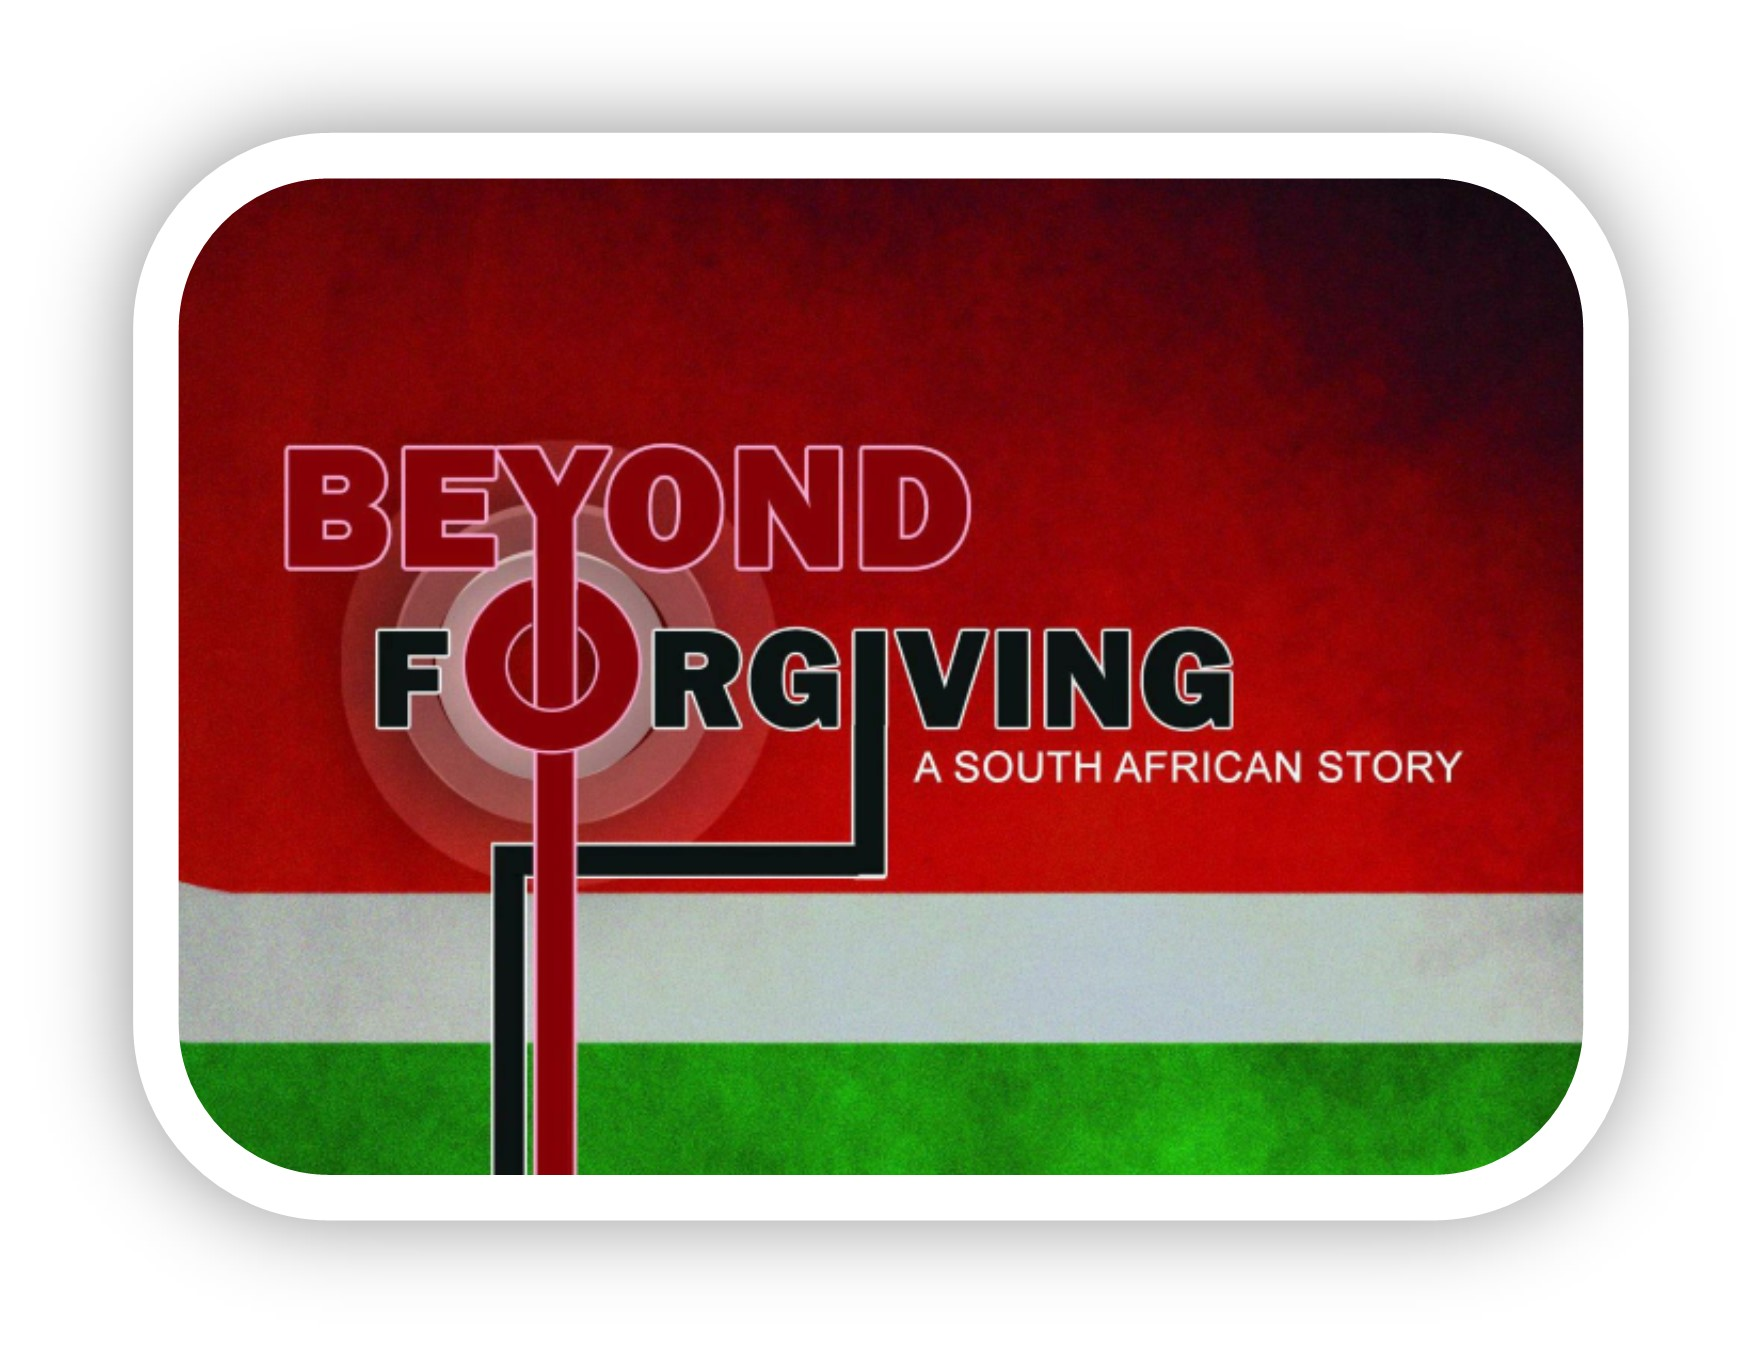 Beyond Forgiving logo